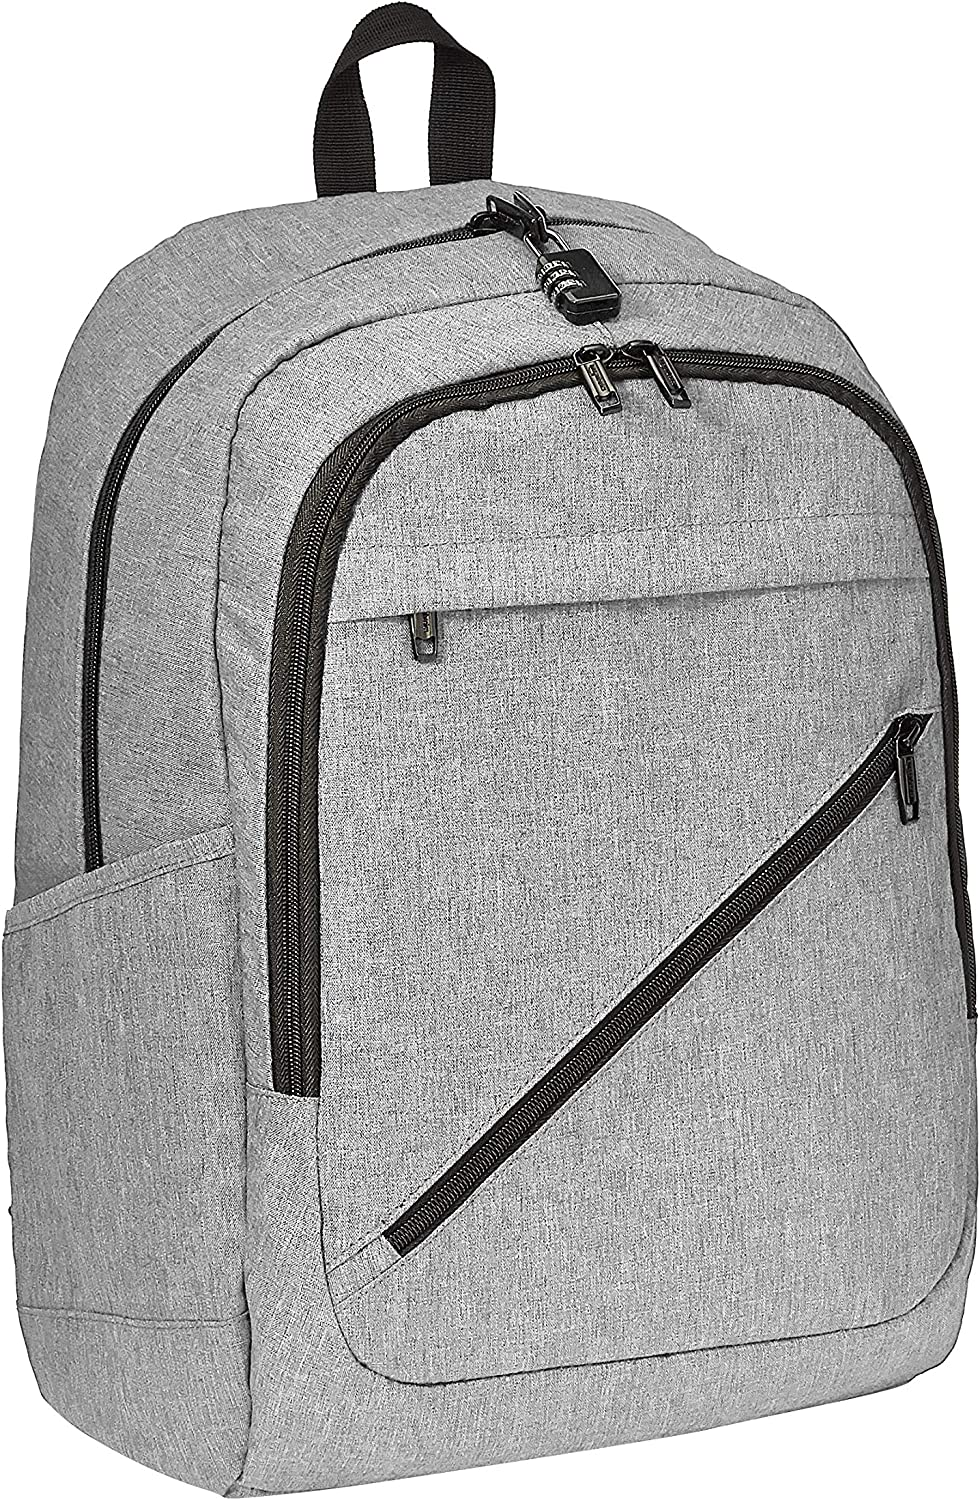 AmazonBasics Anti-Theft Water Resistant Backpack for Laptops up to 17-Inches - Grey